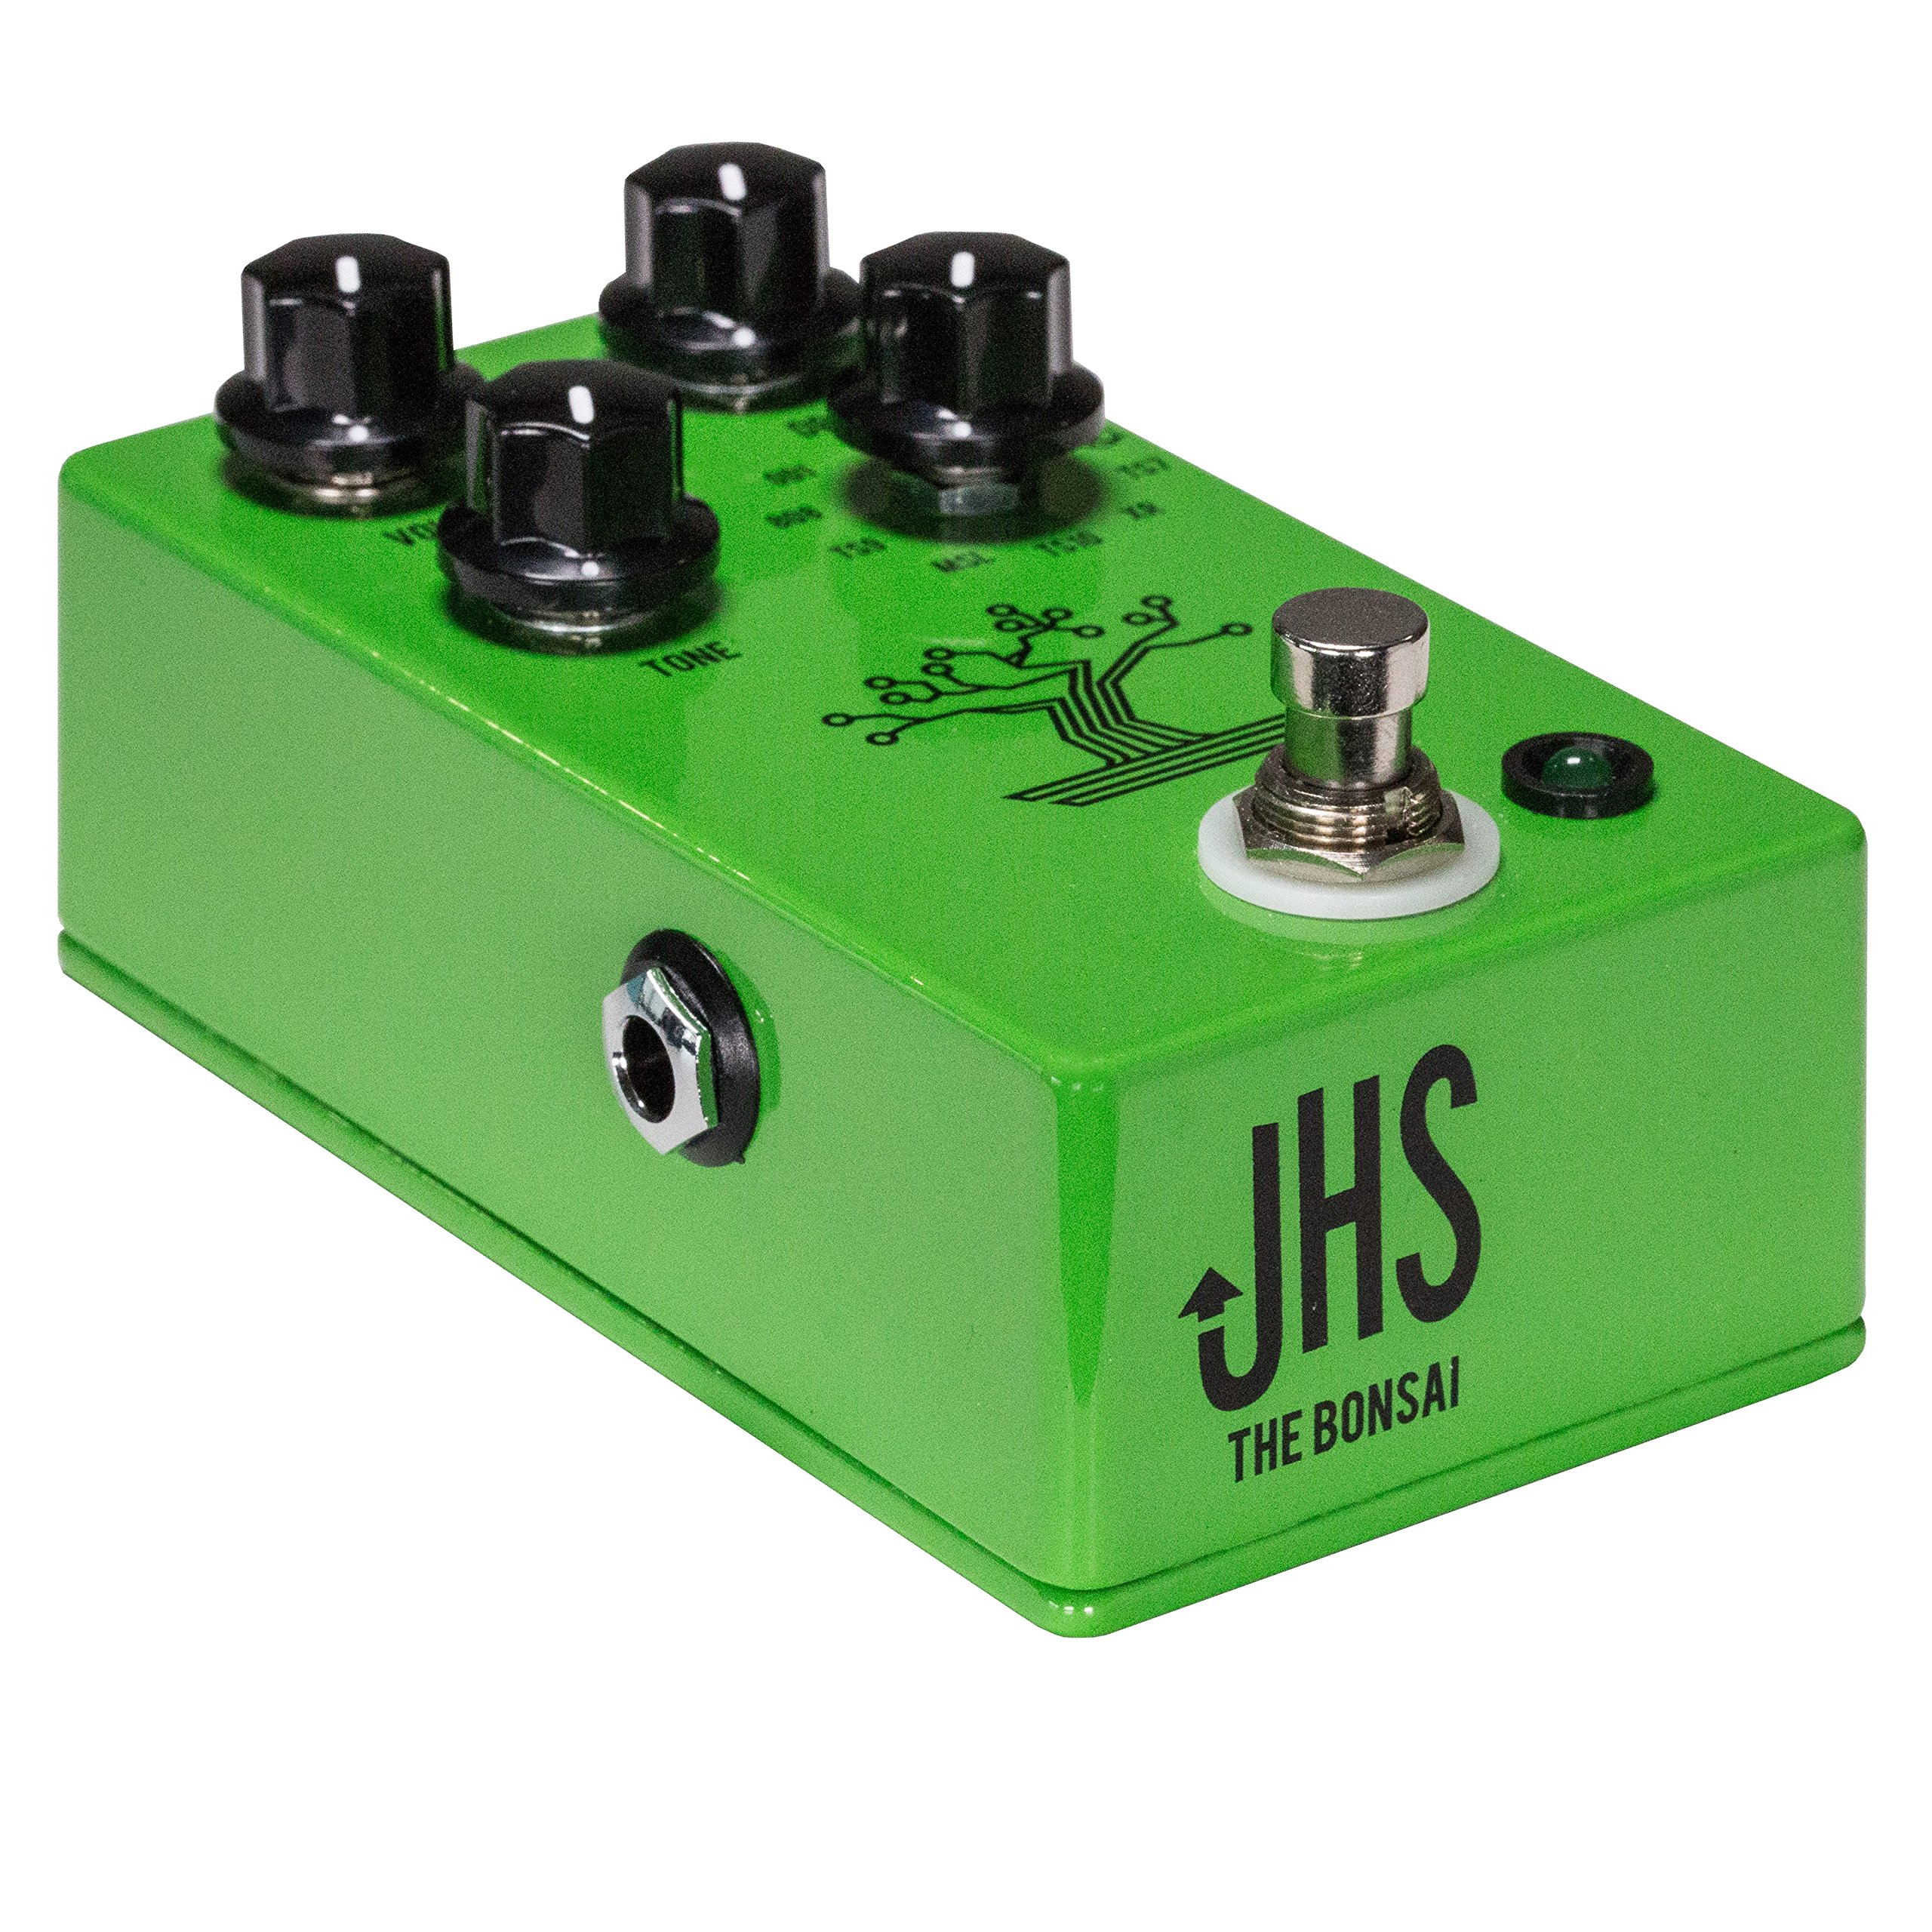 JHS Bonsai 9-Way Screamer Overdrive Guitar Effects Pedal by JHS Pedals (Image #4)